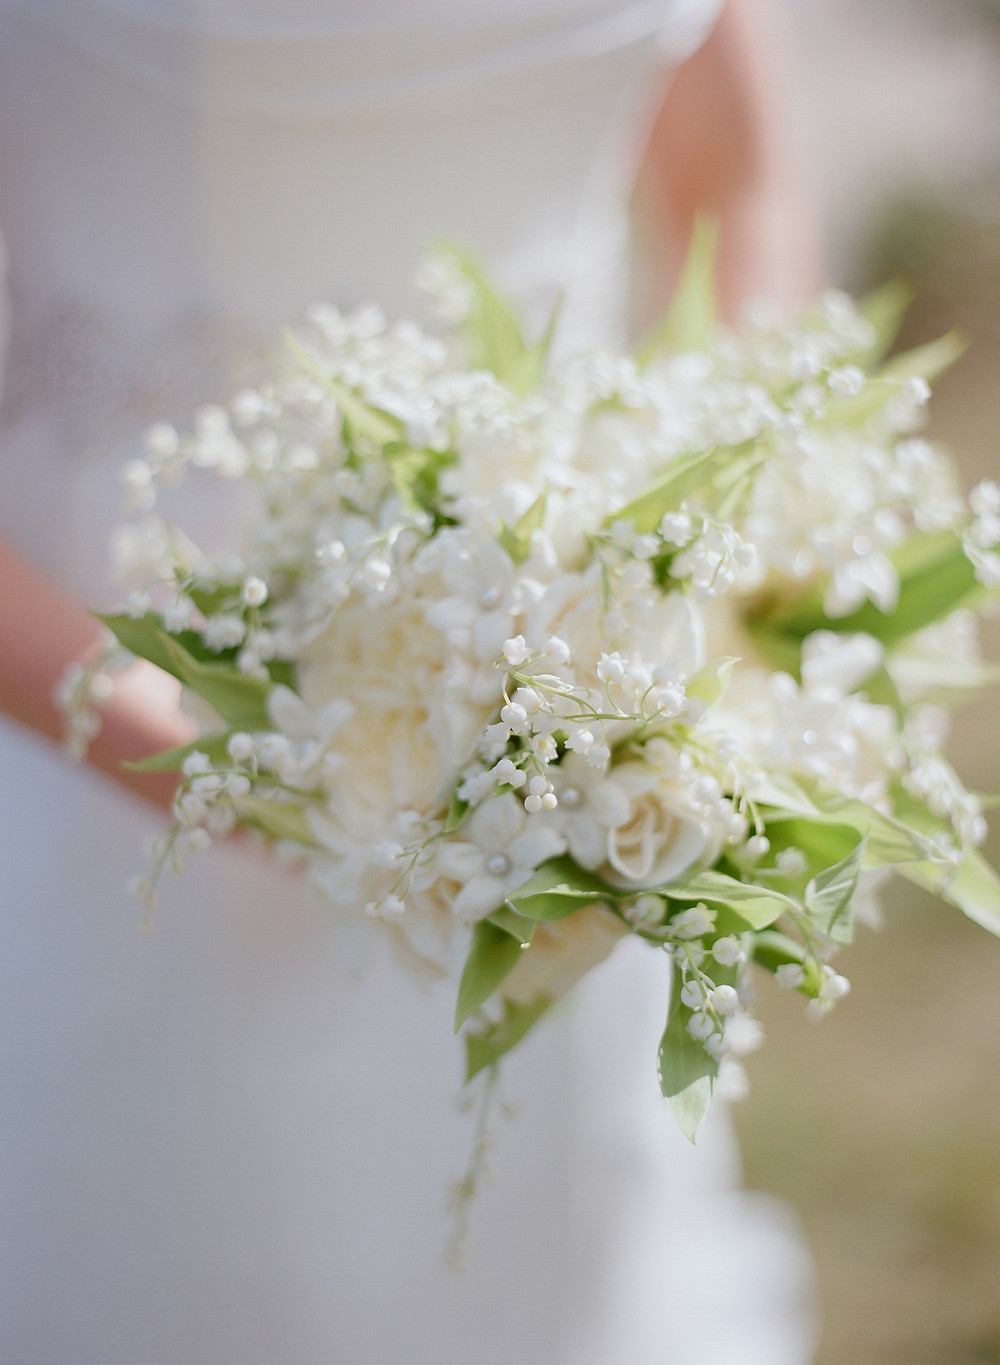 white and green bouquet, white and green wedding colors, white and green wedding flowers, small bouquet, elegant bouquet, country wedding, outdoor wedding, bride,